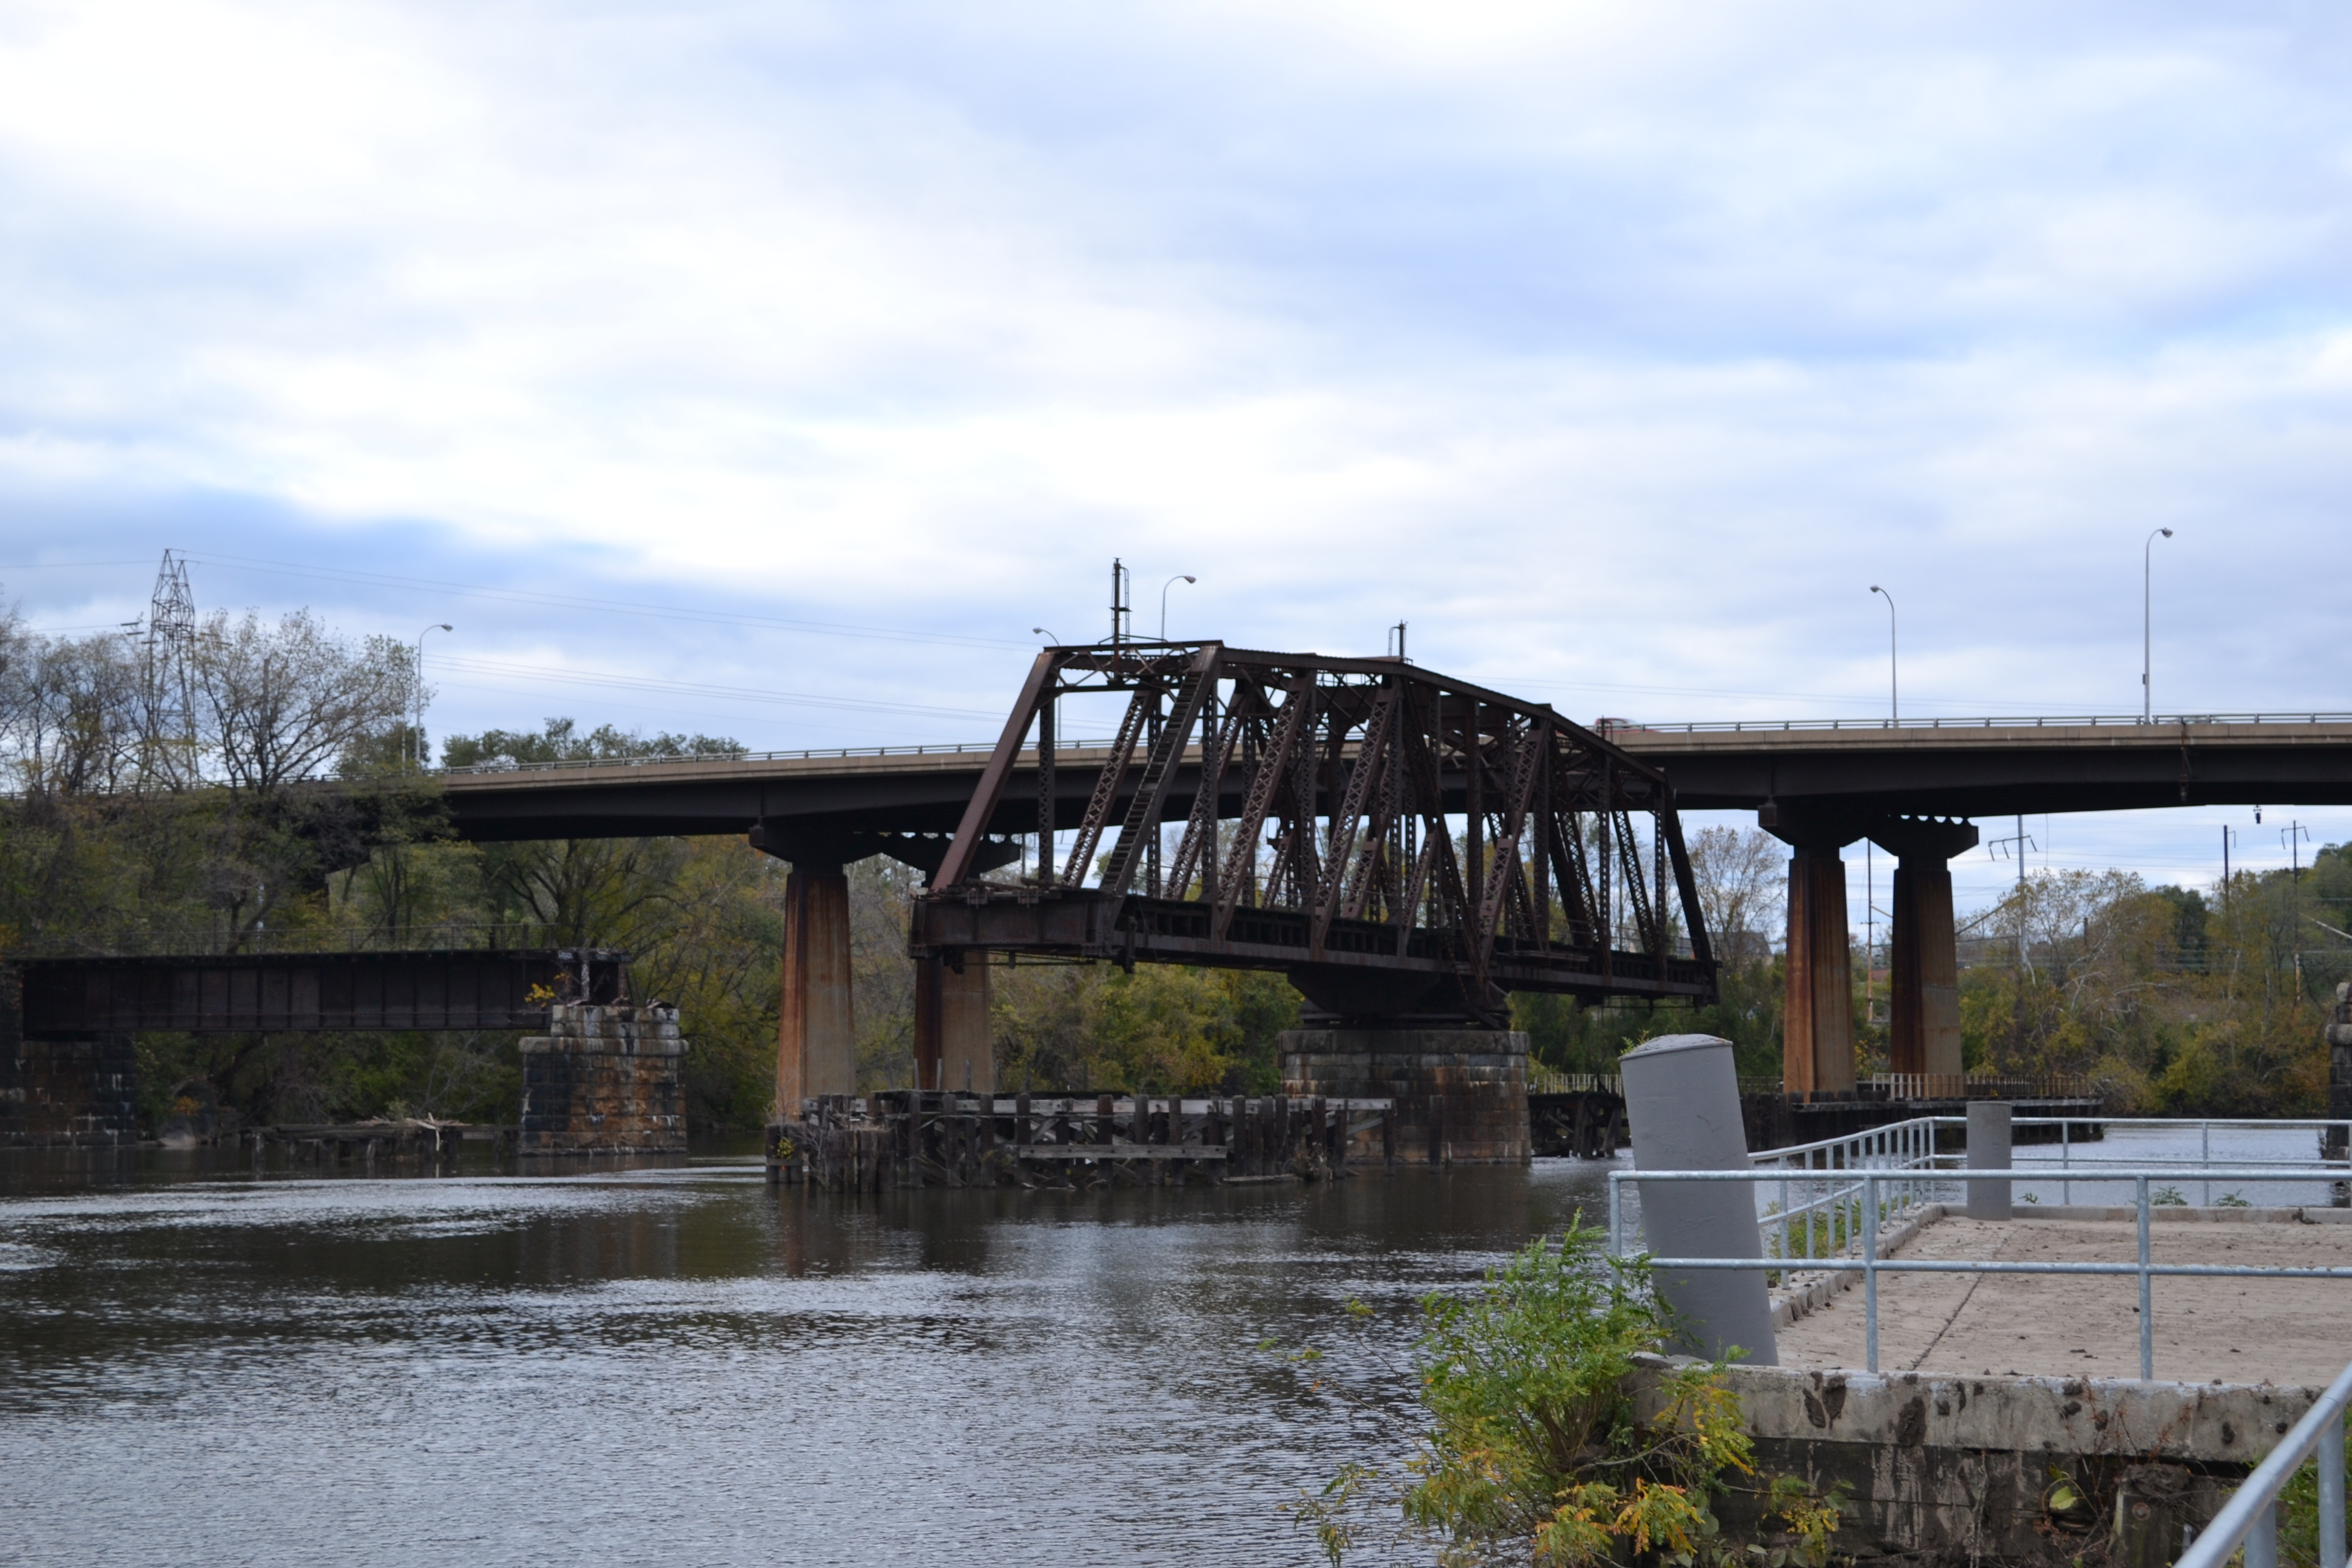 The PW&B bridge is abandoned and open, but some hope it could be rehabbed into a pedestrian and bicycle bridge to Bartram's Mile